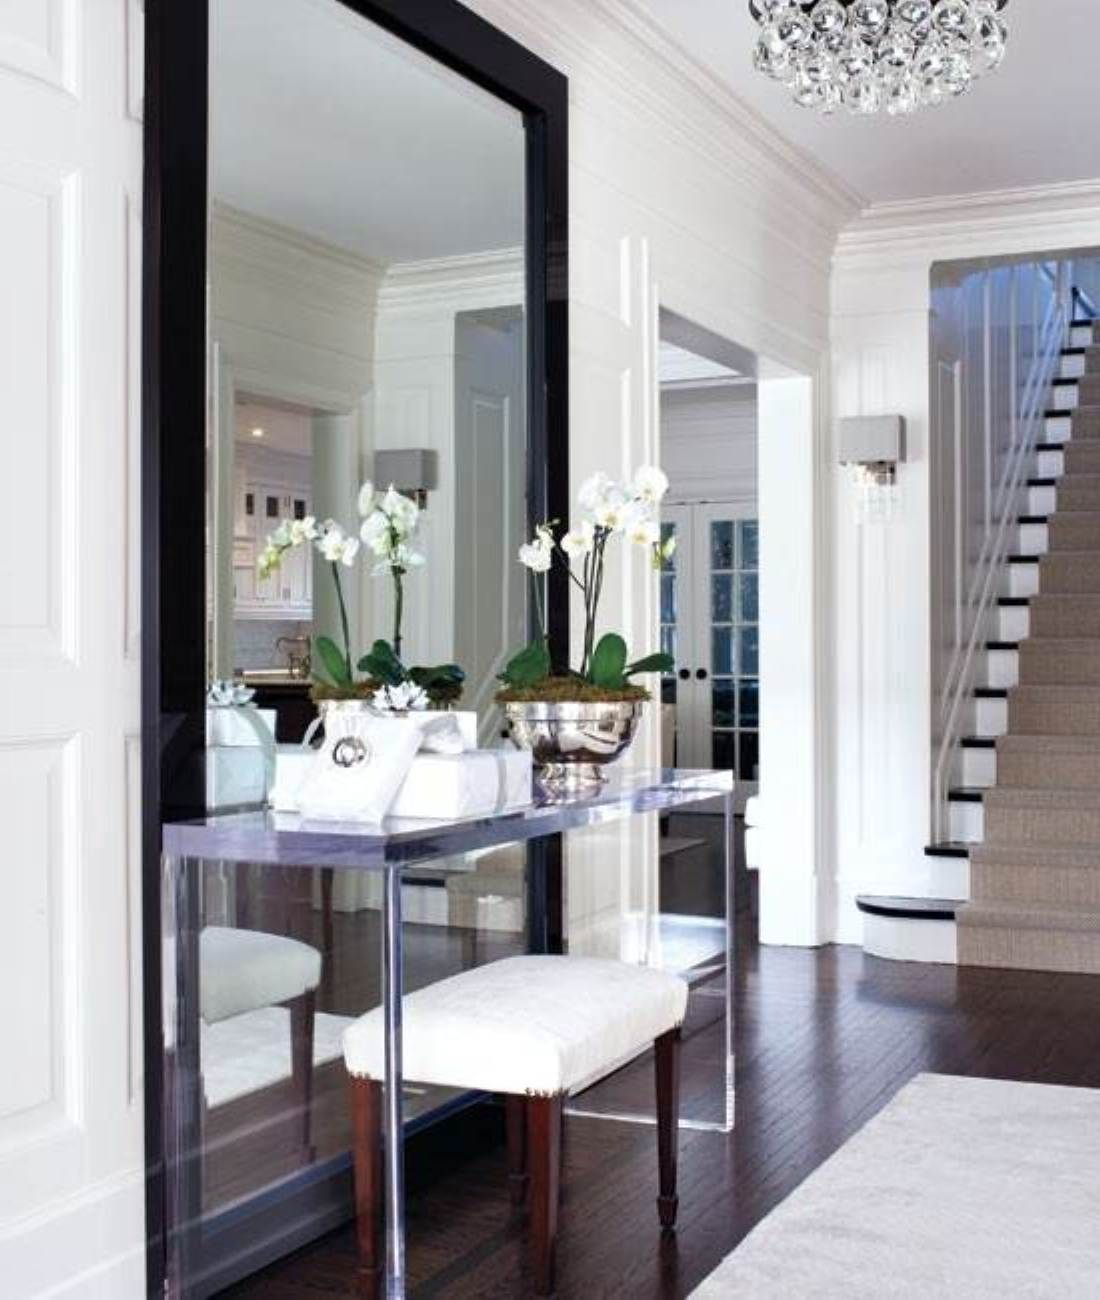 Awesome Black Wood Floor Plus Huge Wall Mirror Design Feat Captivating  Console Table Decor With Potted Orchid Flowers Inspiring Console Table  Decor Ideas ...